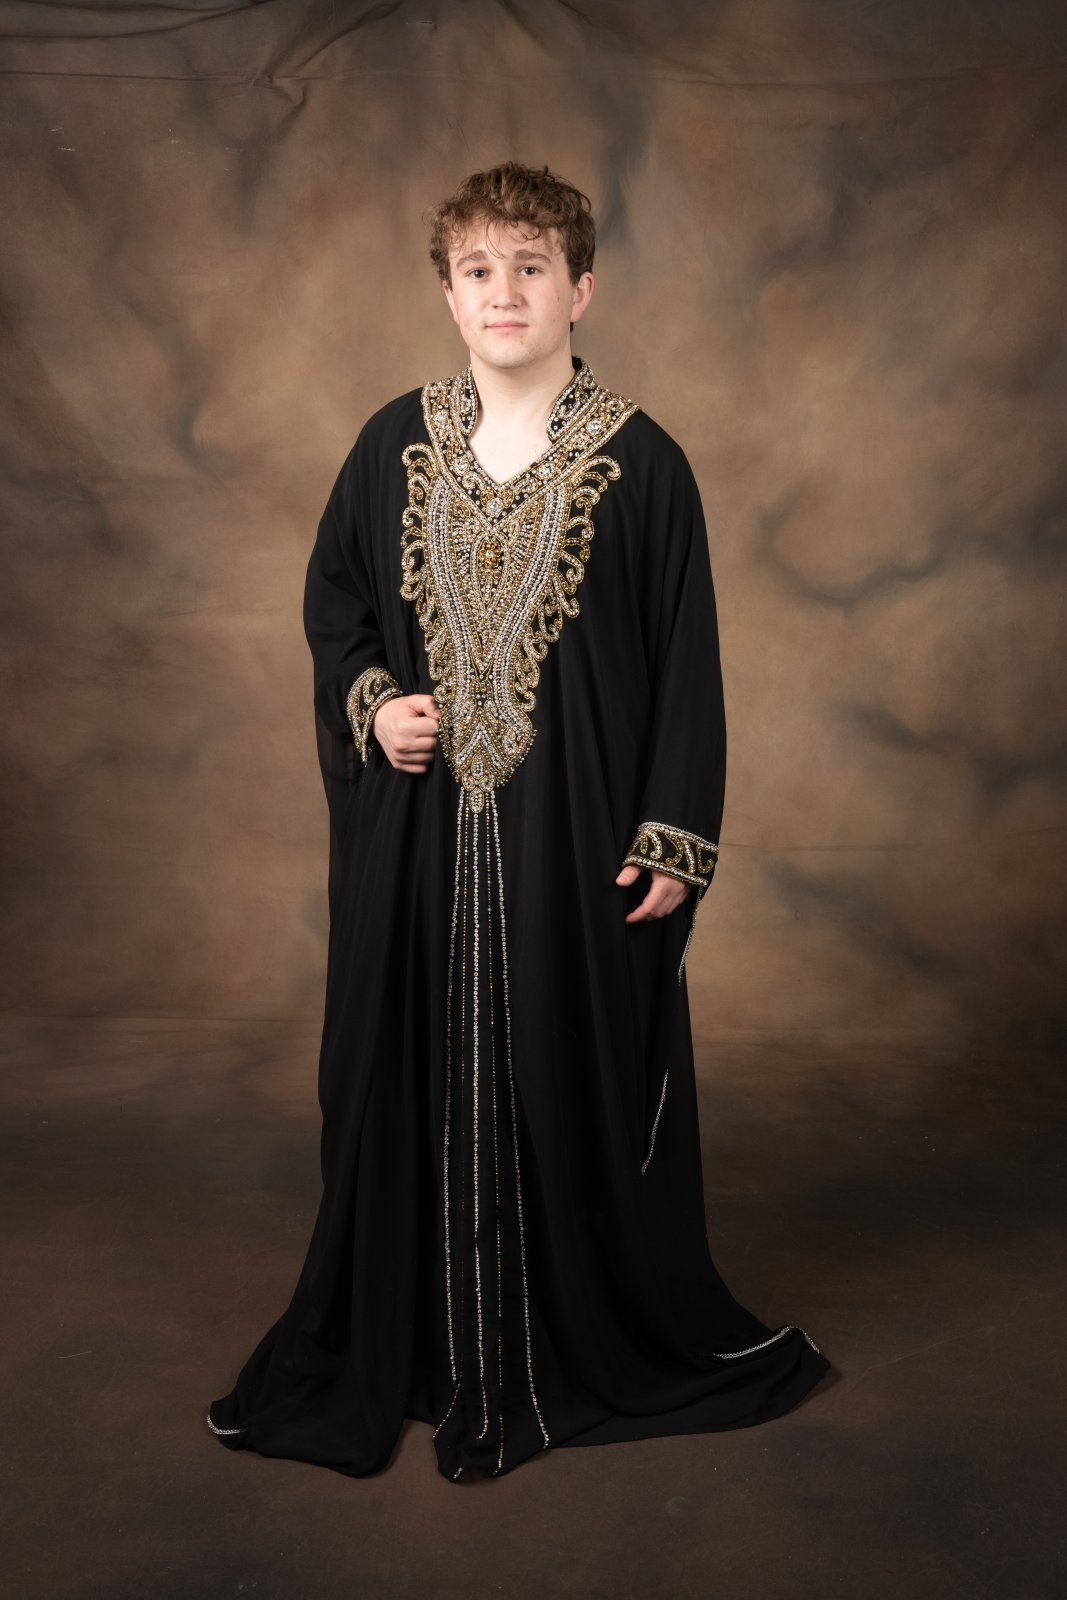 Pharaoh Night Robe Black